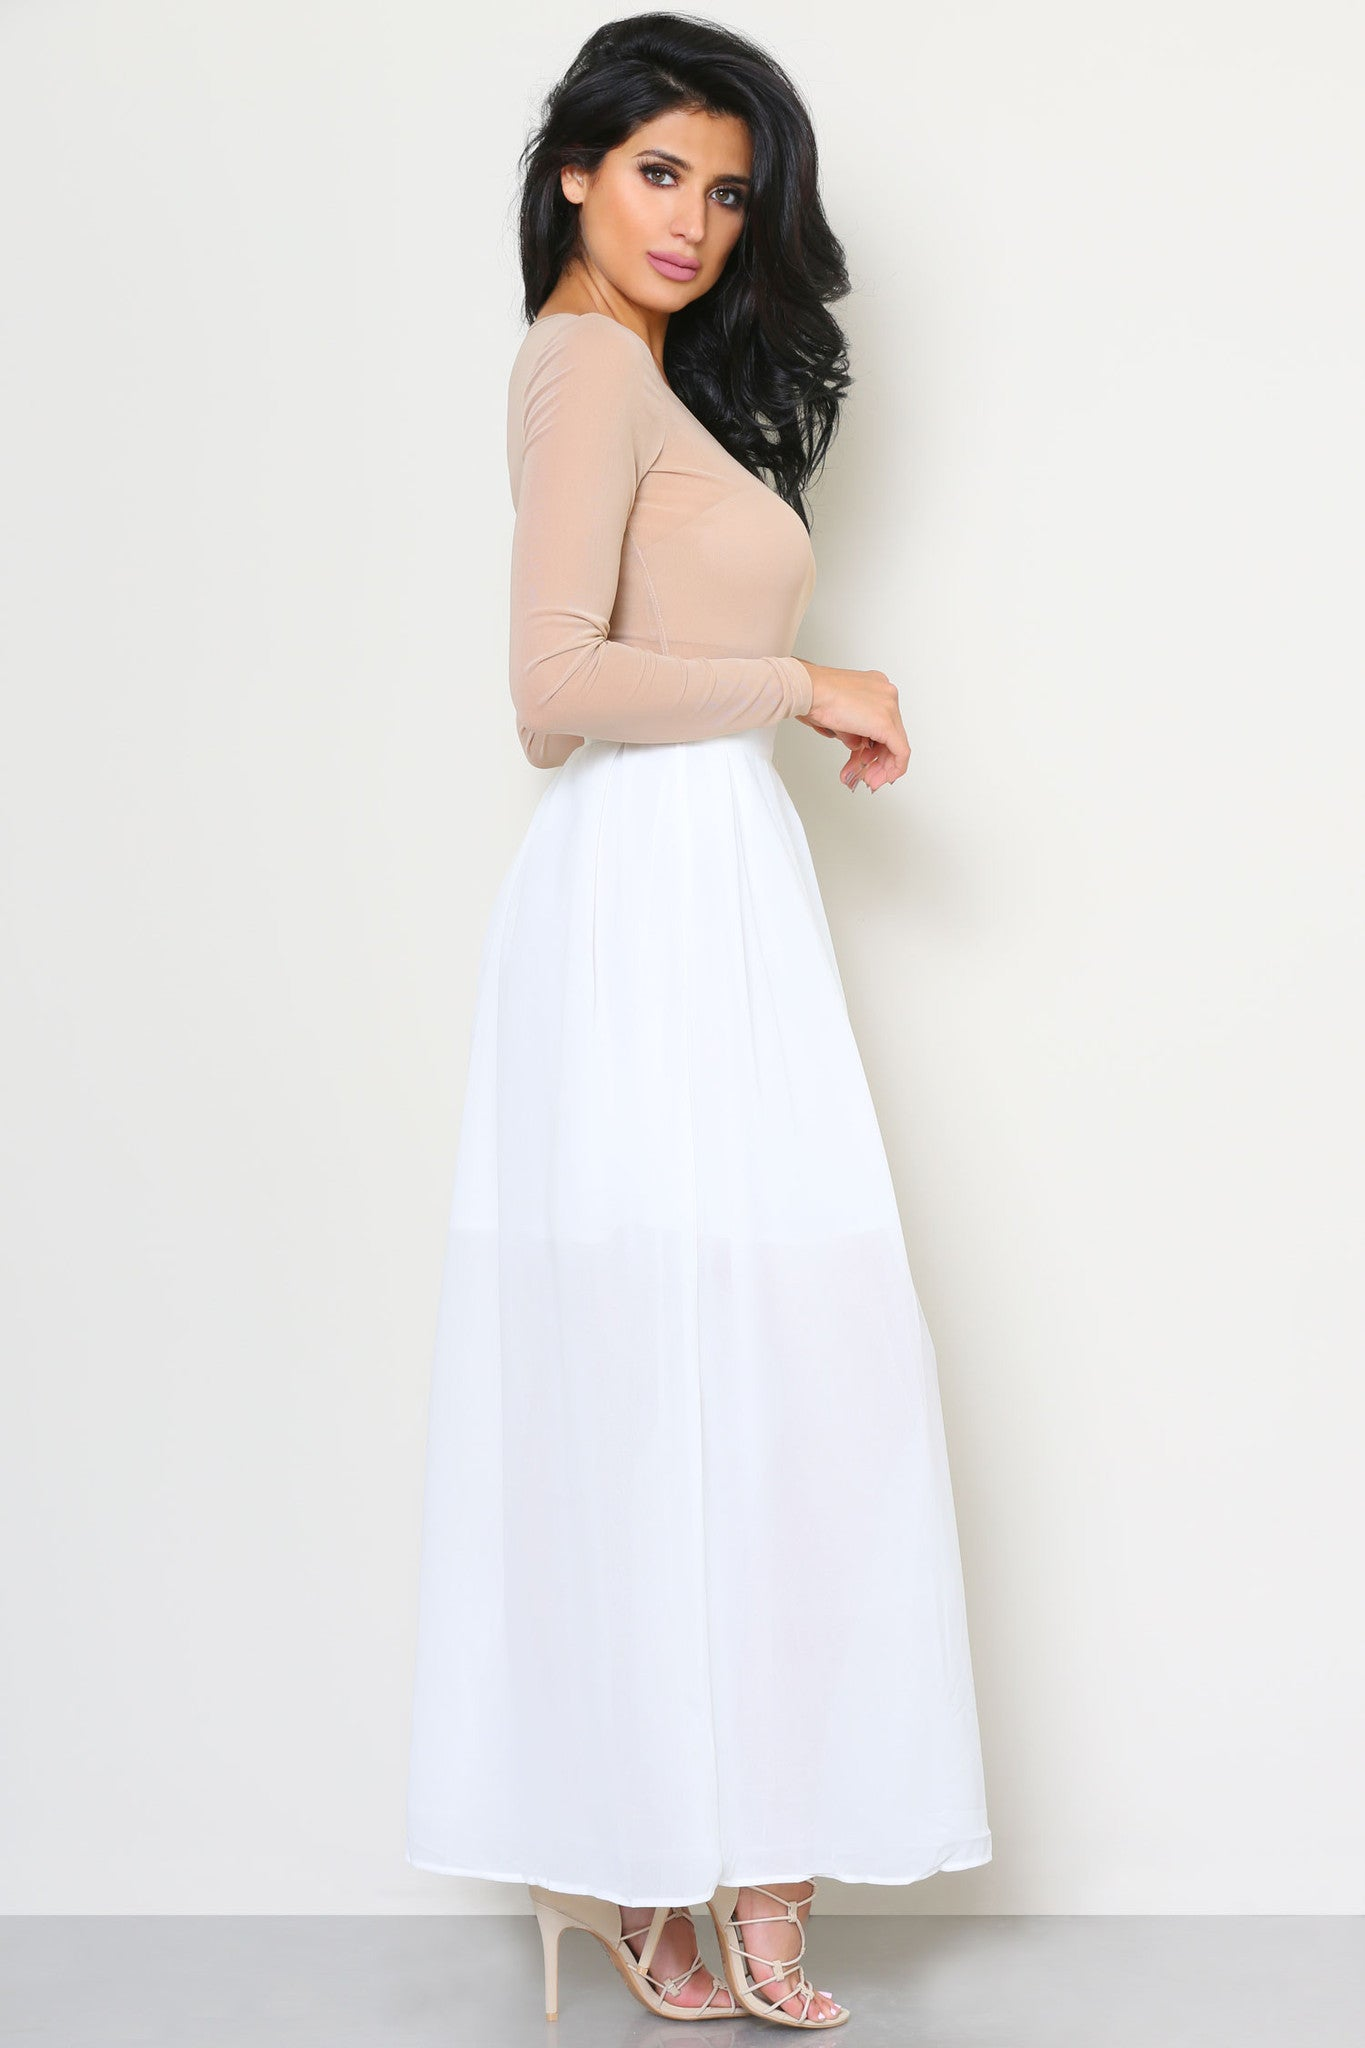 ADALINE SKIRT - Glam Envy - 2